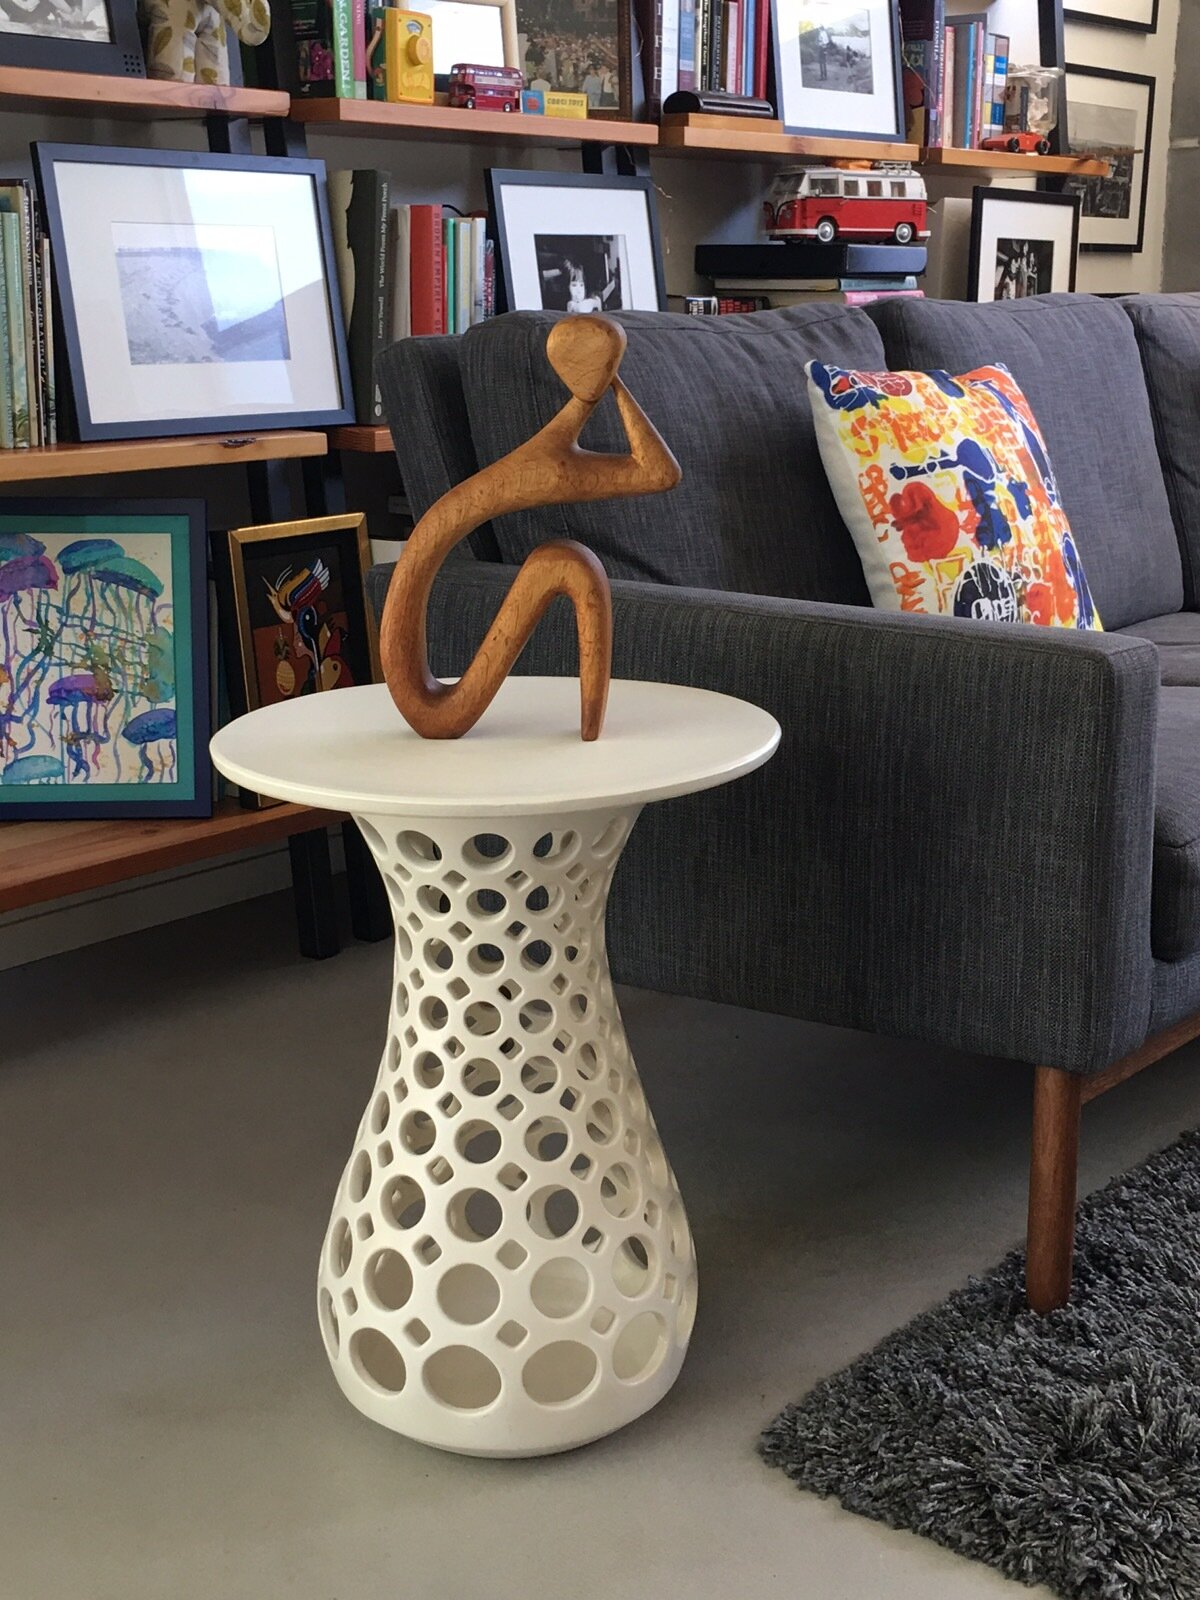 Hourglass openwork table in family room of Eichler private residence, Palo Alto, CA